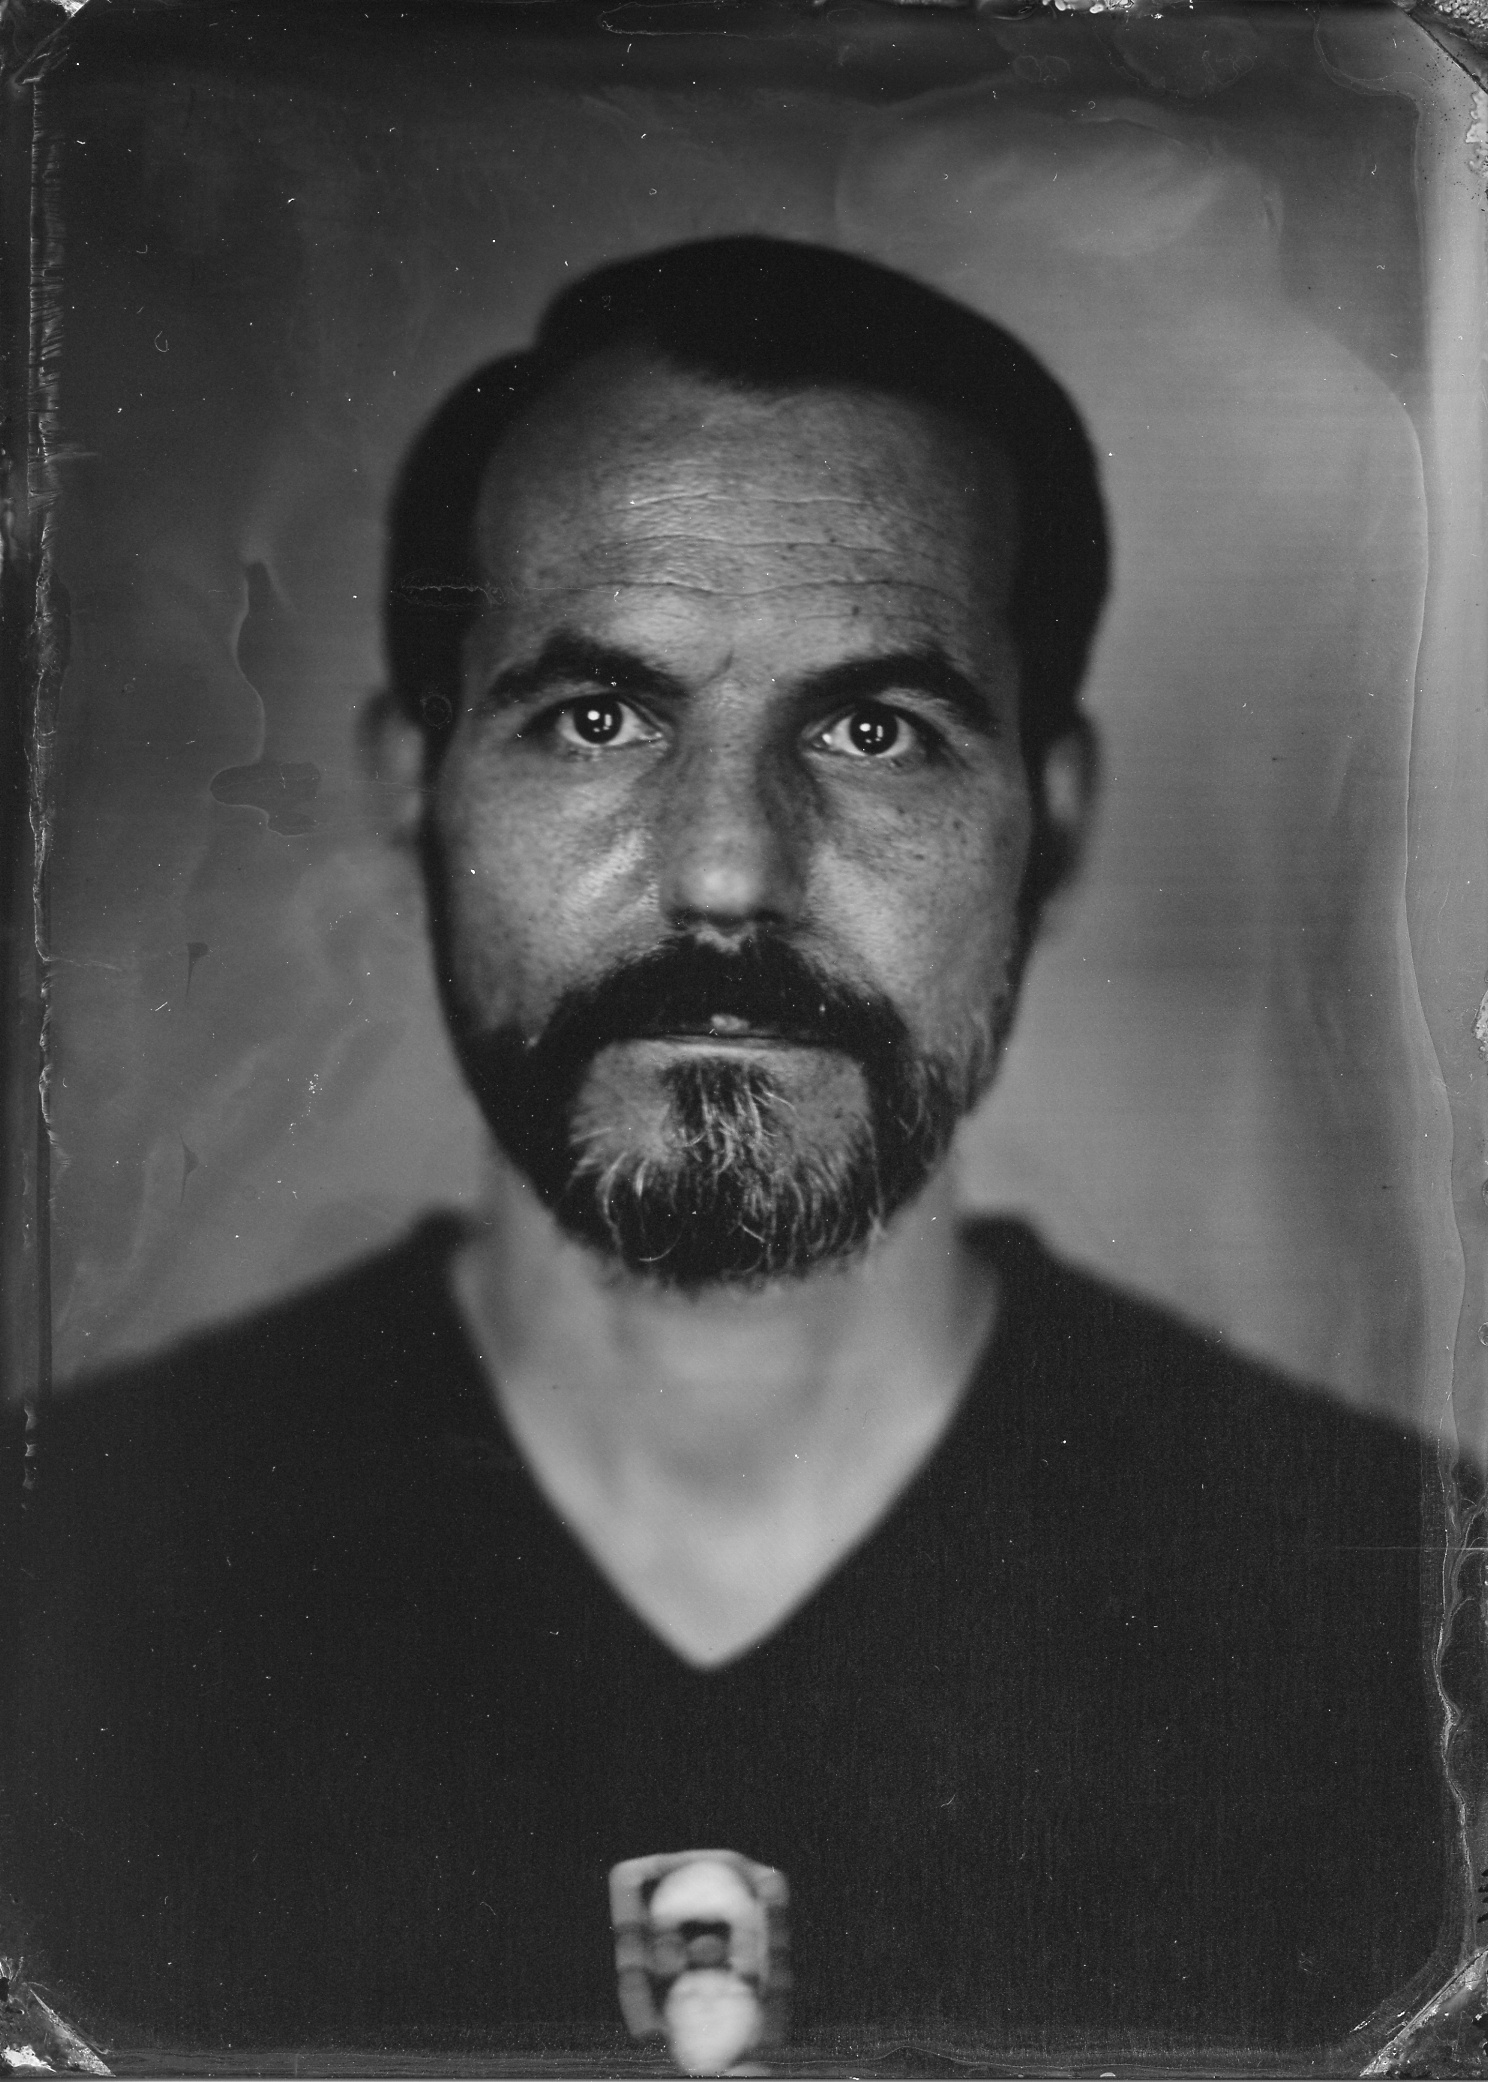 wetplate_011